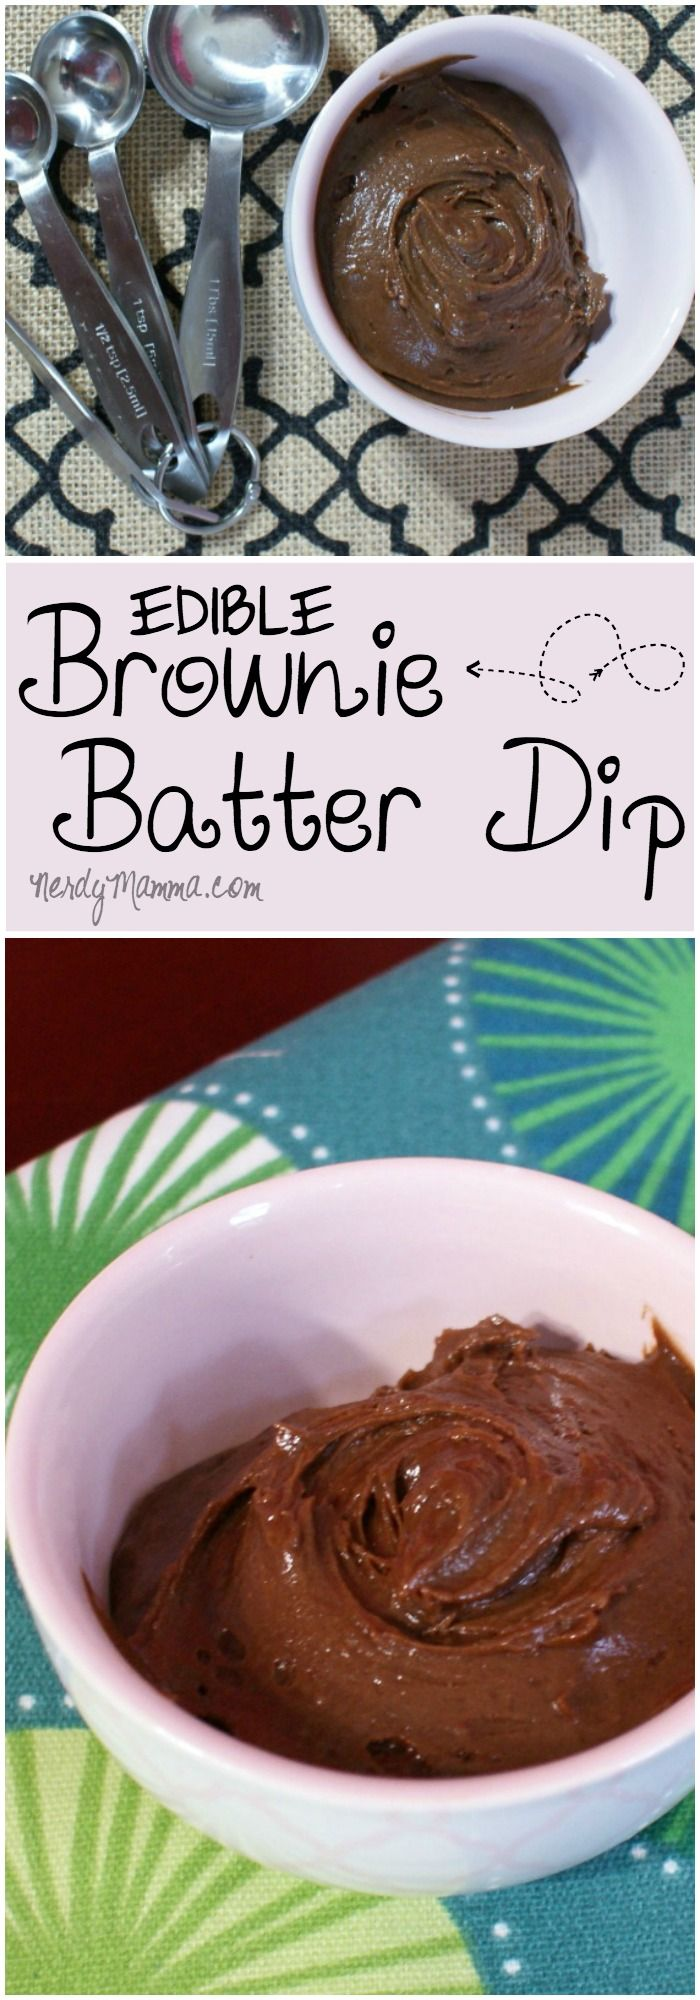 I've heard of edible cake batter, but this recipe for edible brownie batter is amazing. Gluten-free, eggless, dairy-free...it hits all the good places!